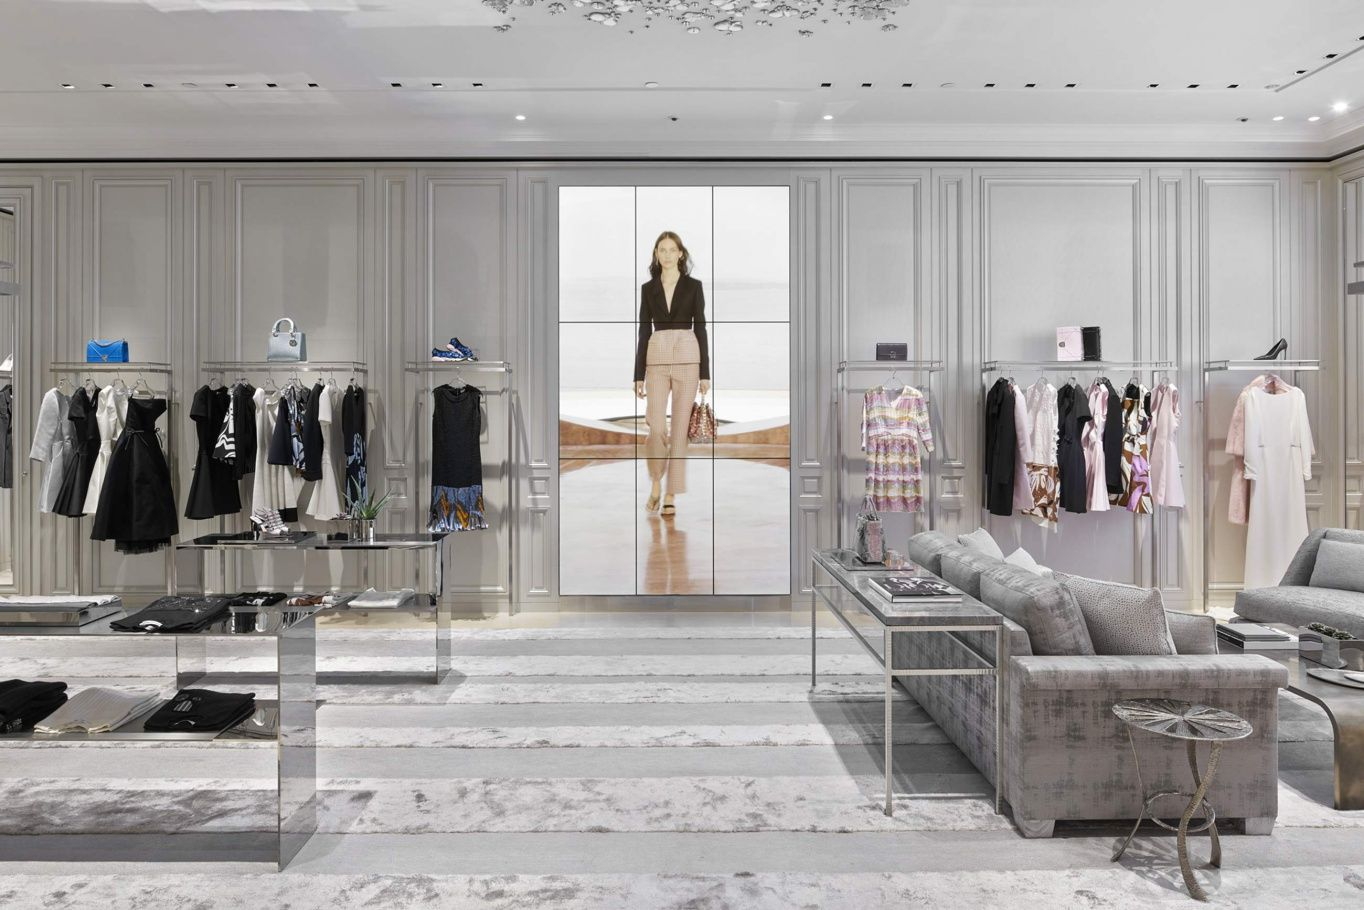 Dior Boutique Interior